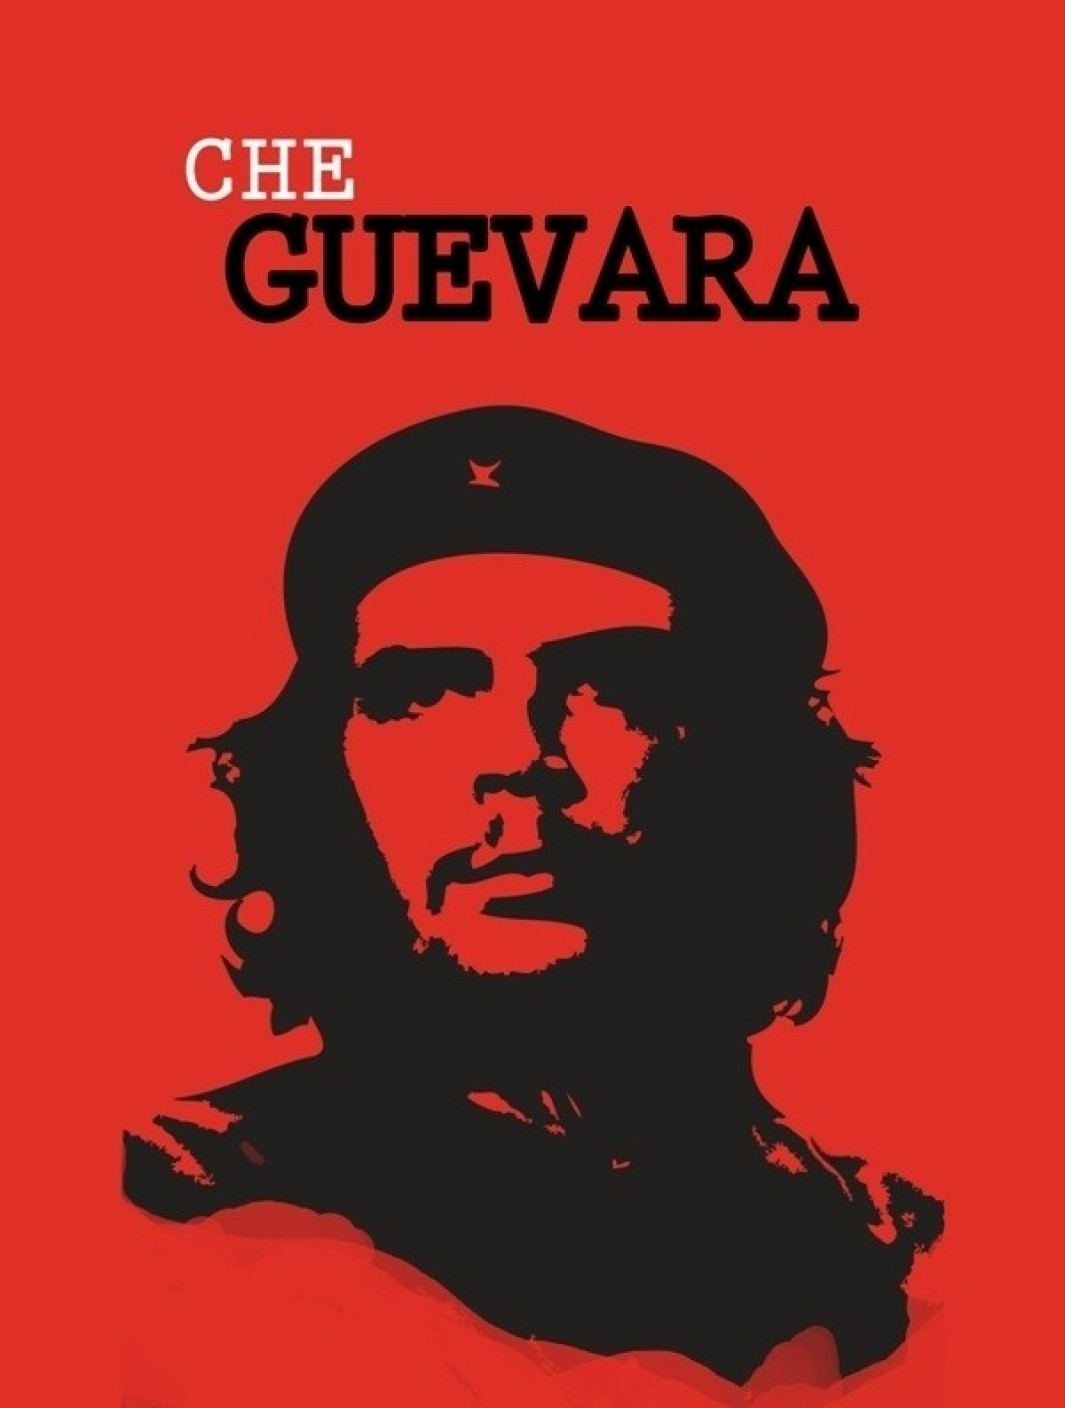 research paper on che guevara Forty years ago this month, che guevara was captured and executed as he tried  to lead a guerilla insurrection deep in the bolivian jungle.